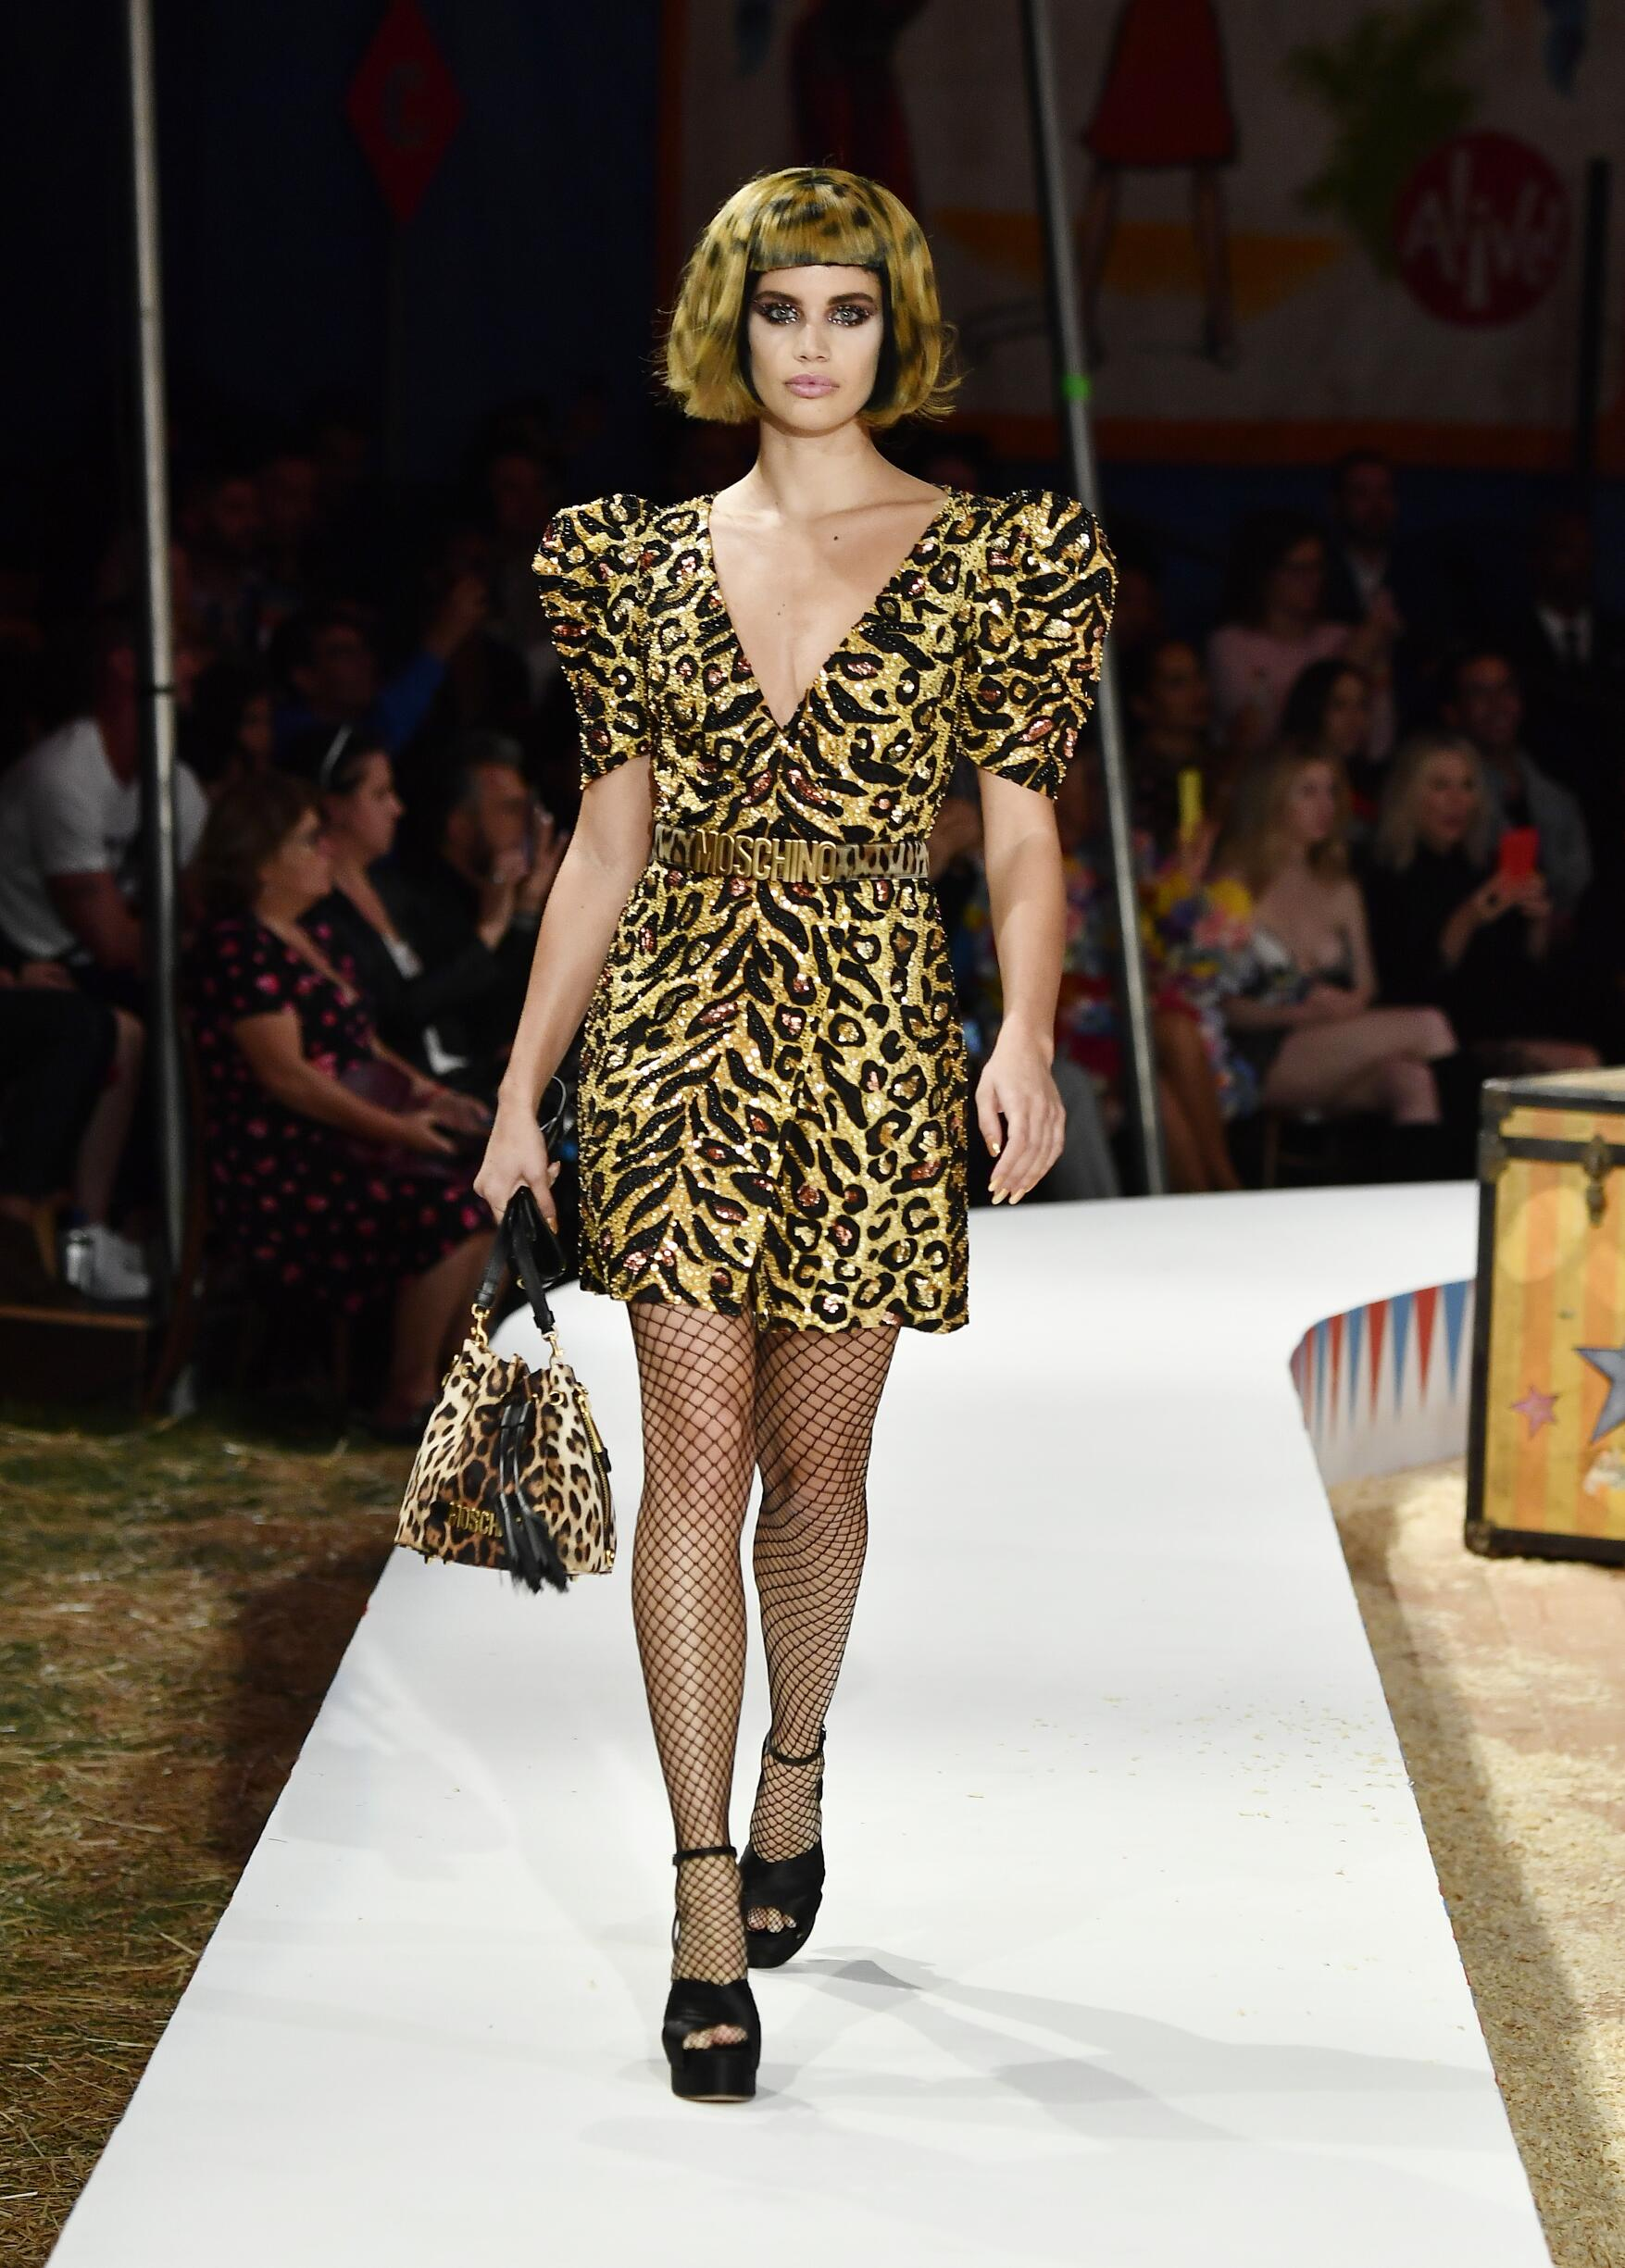 Moschino Spring Summer 2019 Menswear and Women's Resort Collection Look 35 Los Angeles